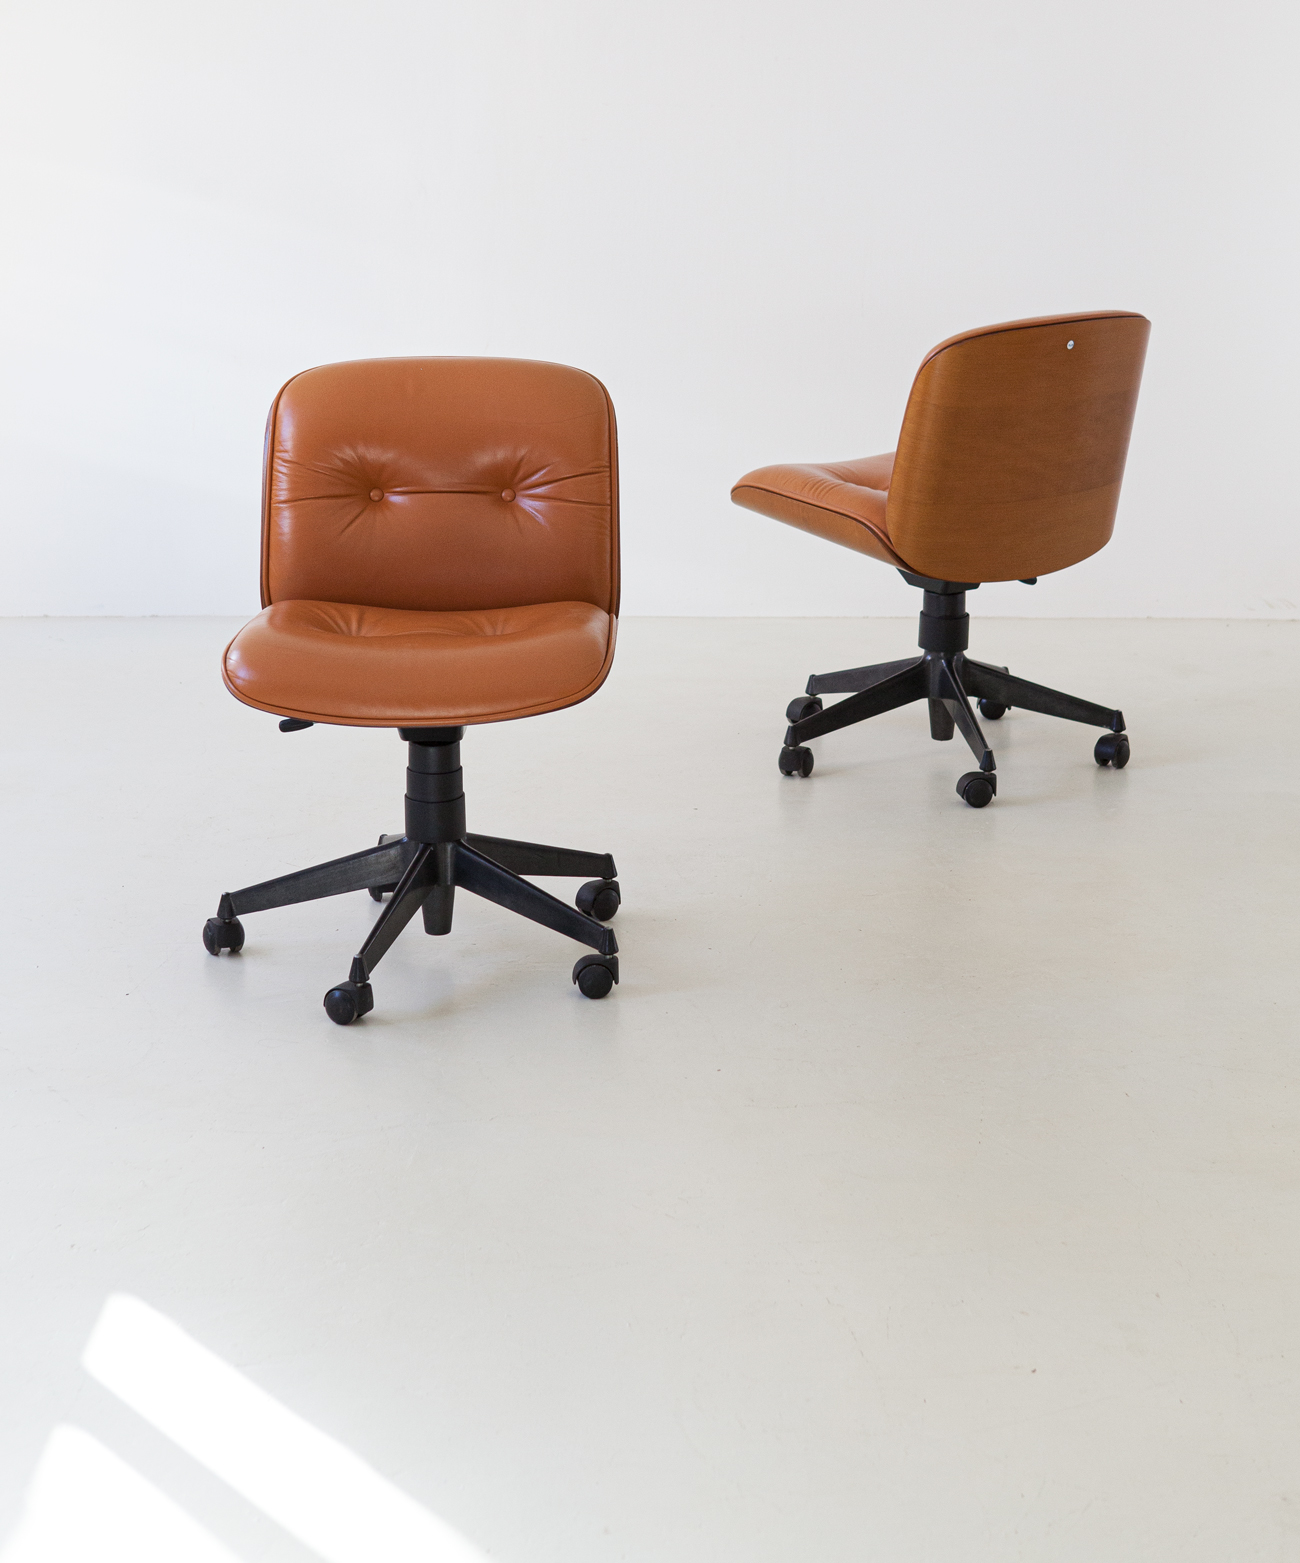 1960s-swivel-desk-chairs-by-ico-parisi-for-mim-1-SE317